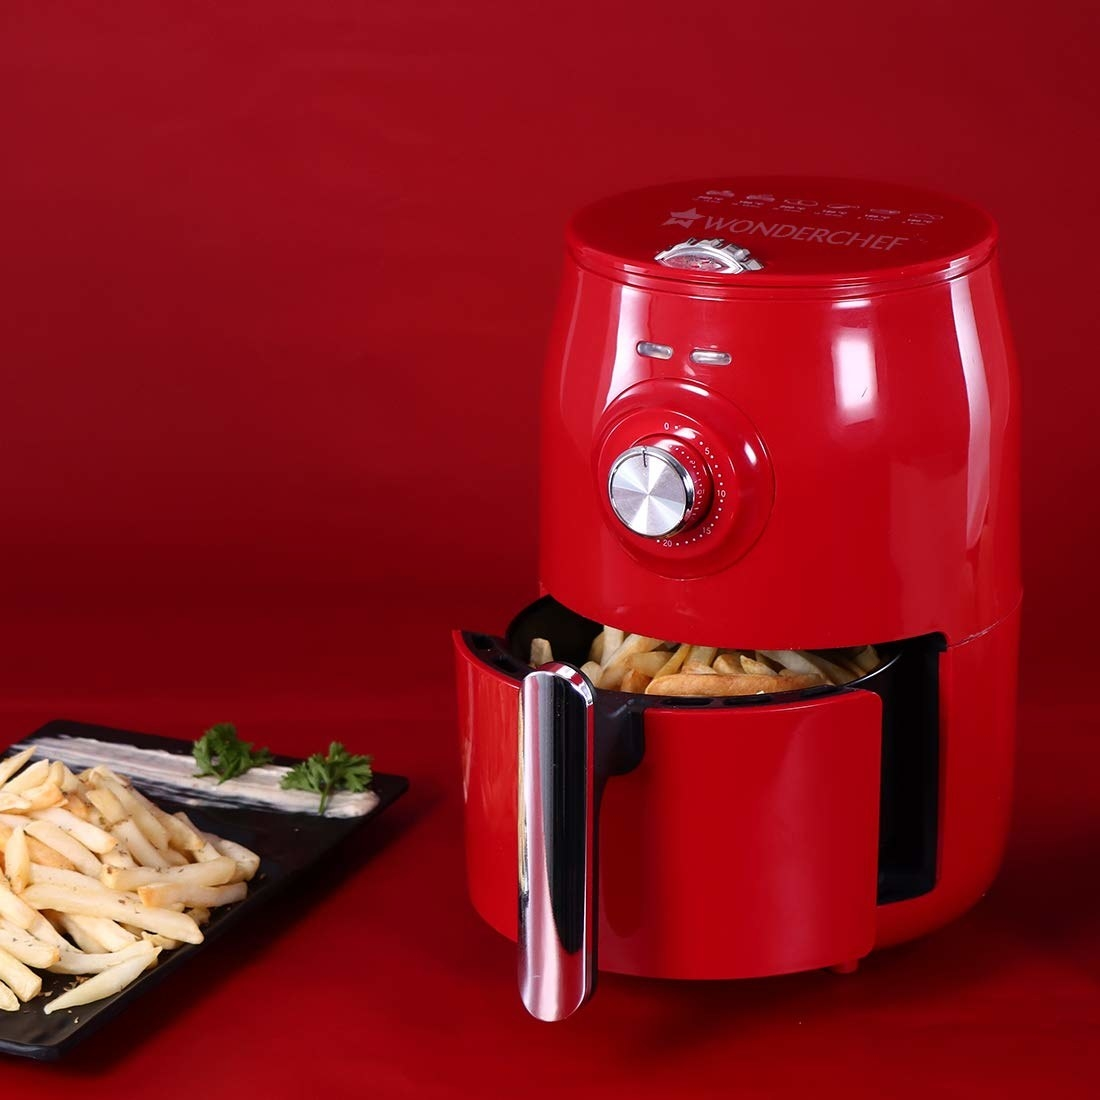 A bright red Air Fryer pictured with french fries in it.